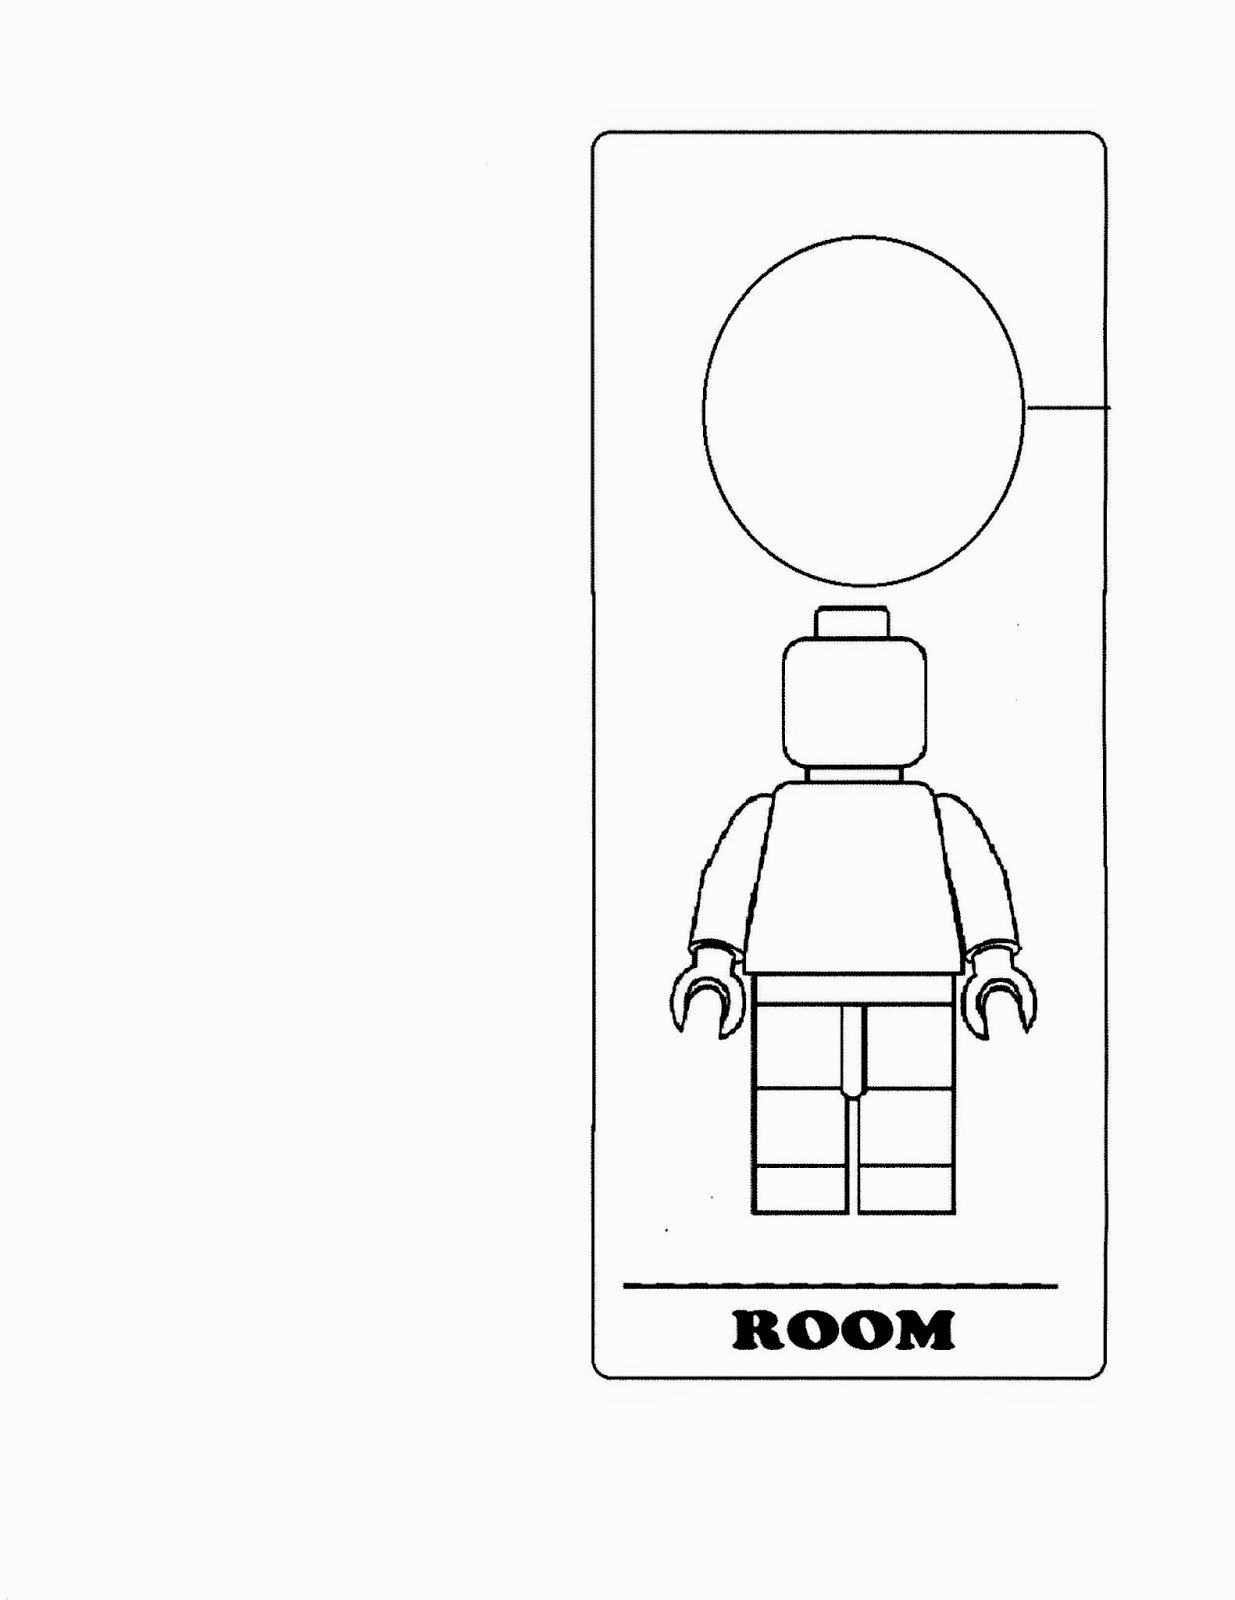 Door Hangers Template Free Awesome Lego Door Hanger Crafts with Cathy Thinking Out Loud